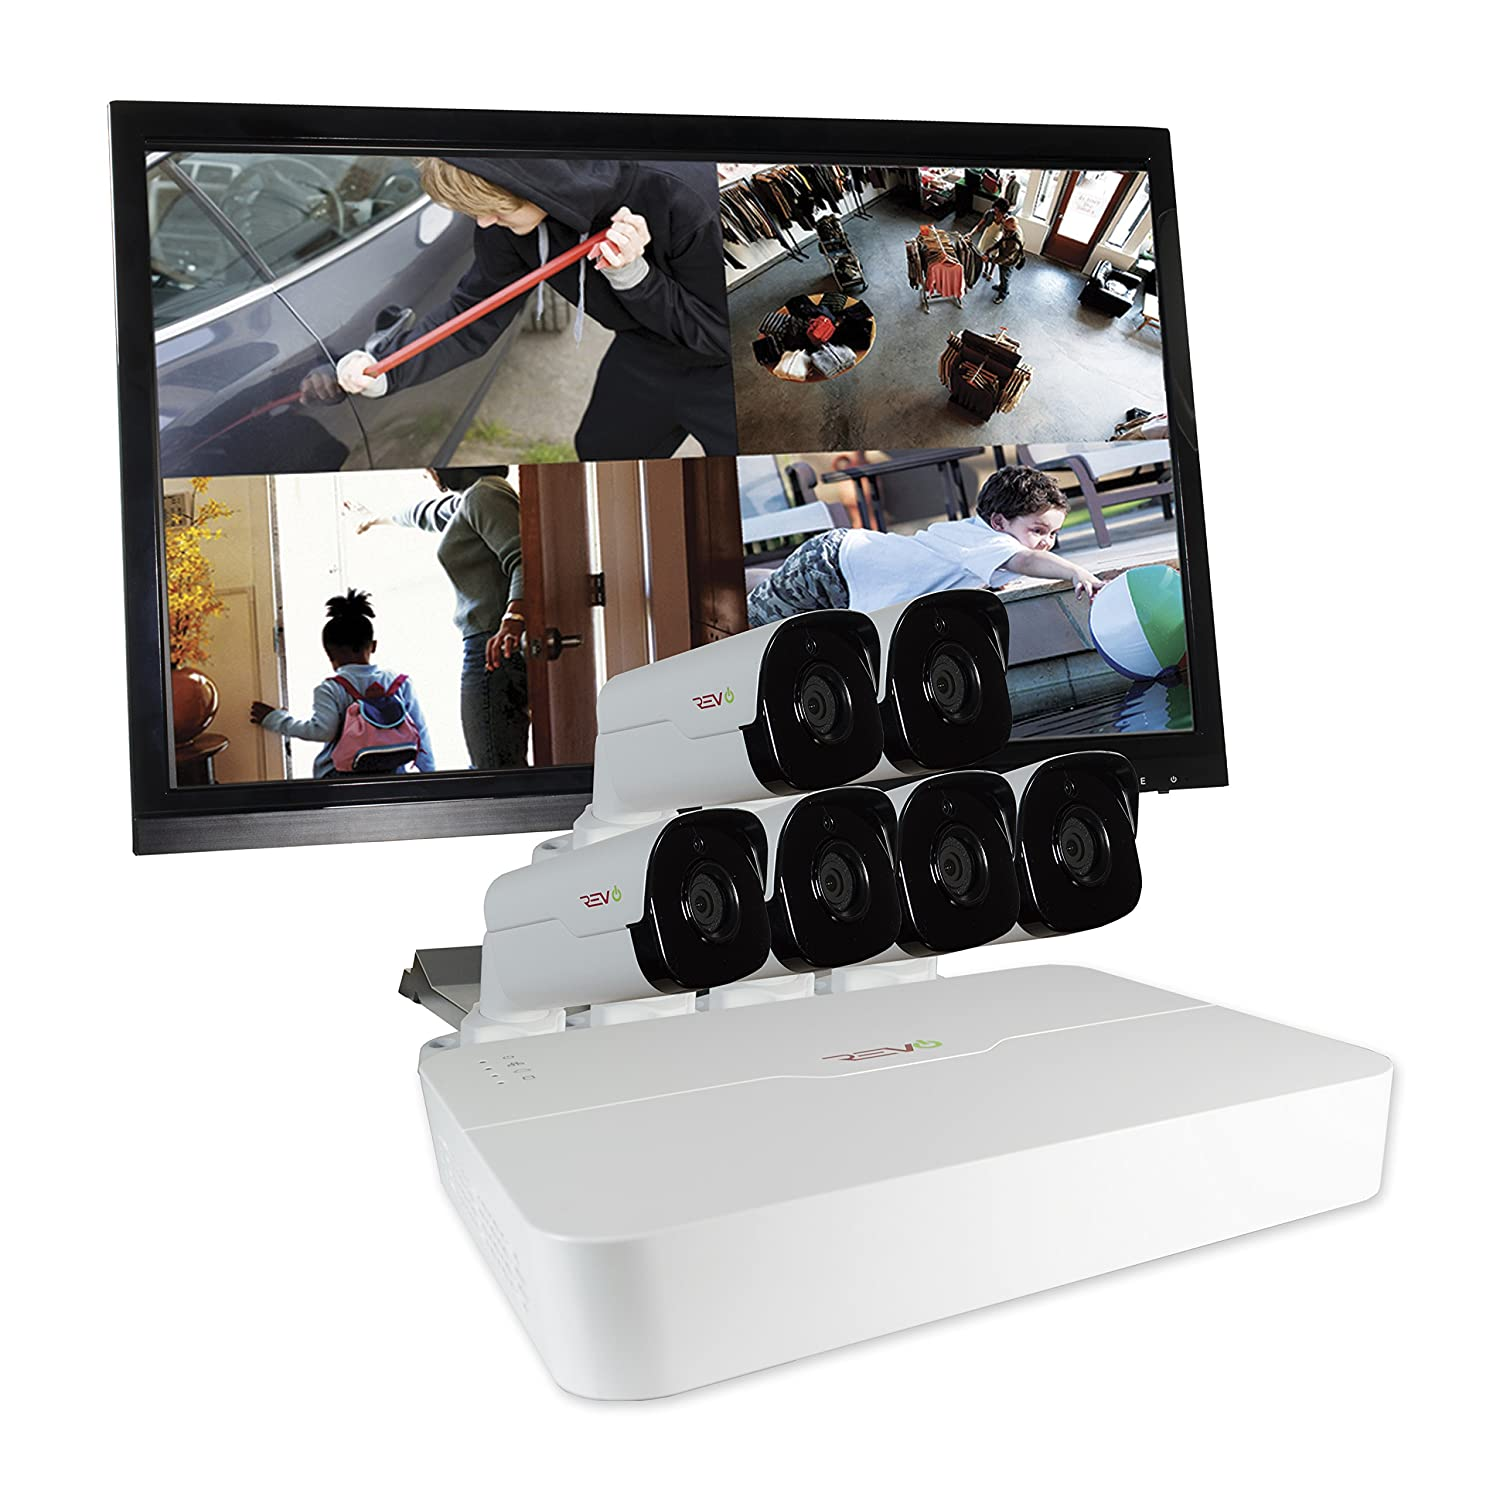 REVO America RU81B6GM22-2T Ultra HD 8-CH 2TB NVR Surveillance System with 6 x 4 Megapixel Bullet Cameras White